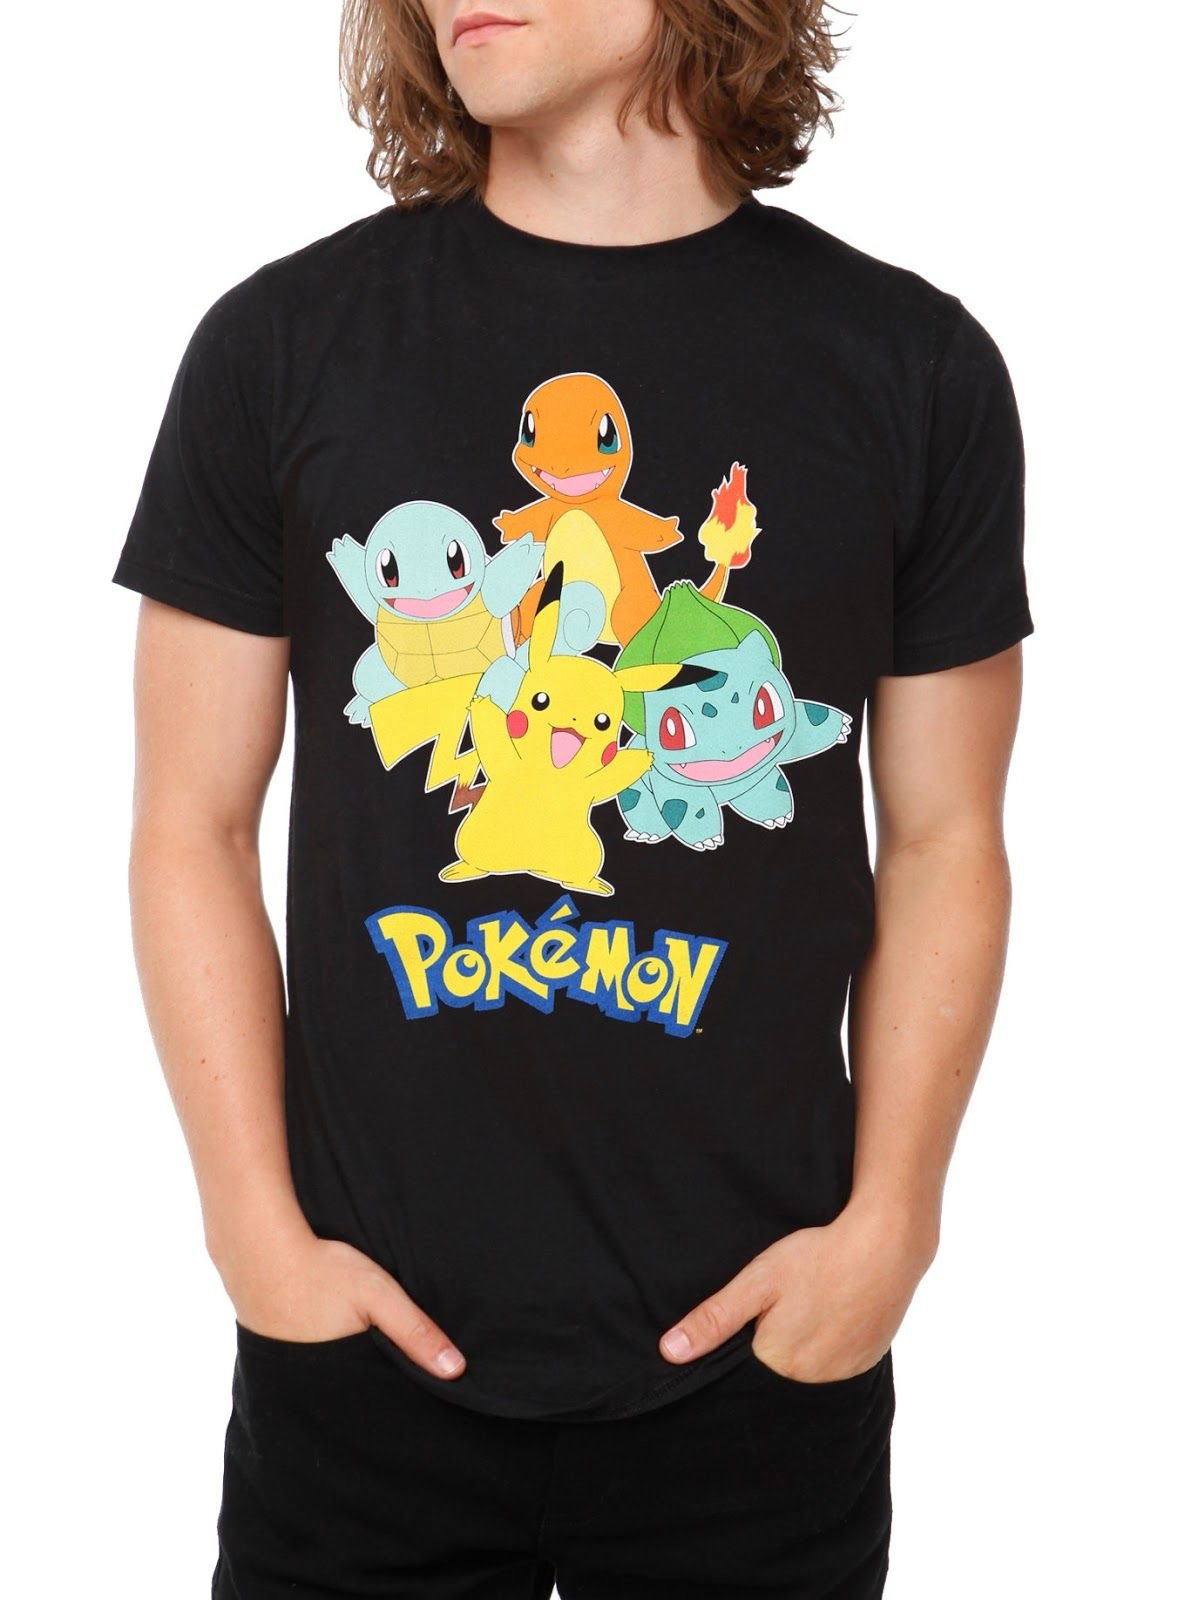 8 bit pokemon t shirt, anatomy of pokemon t shirt, funny pokemon t ...